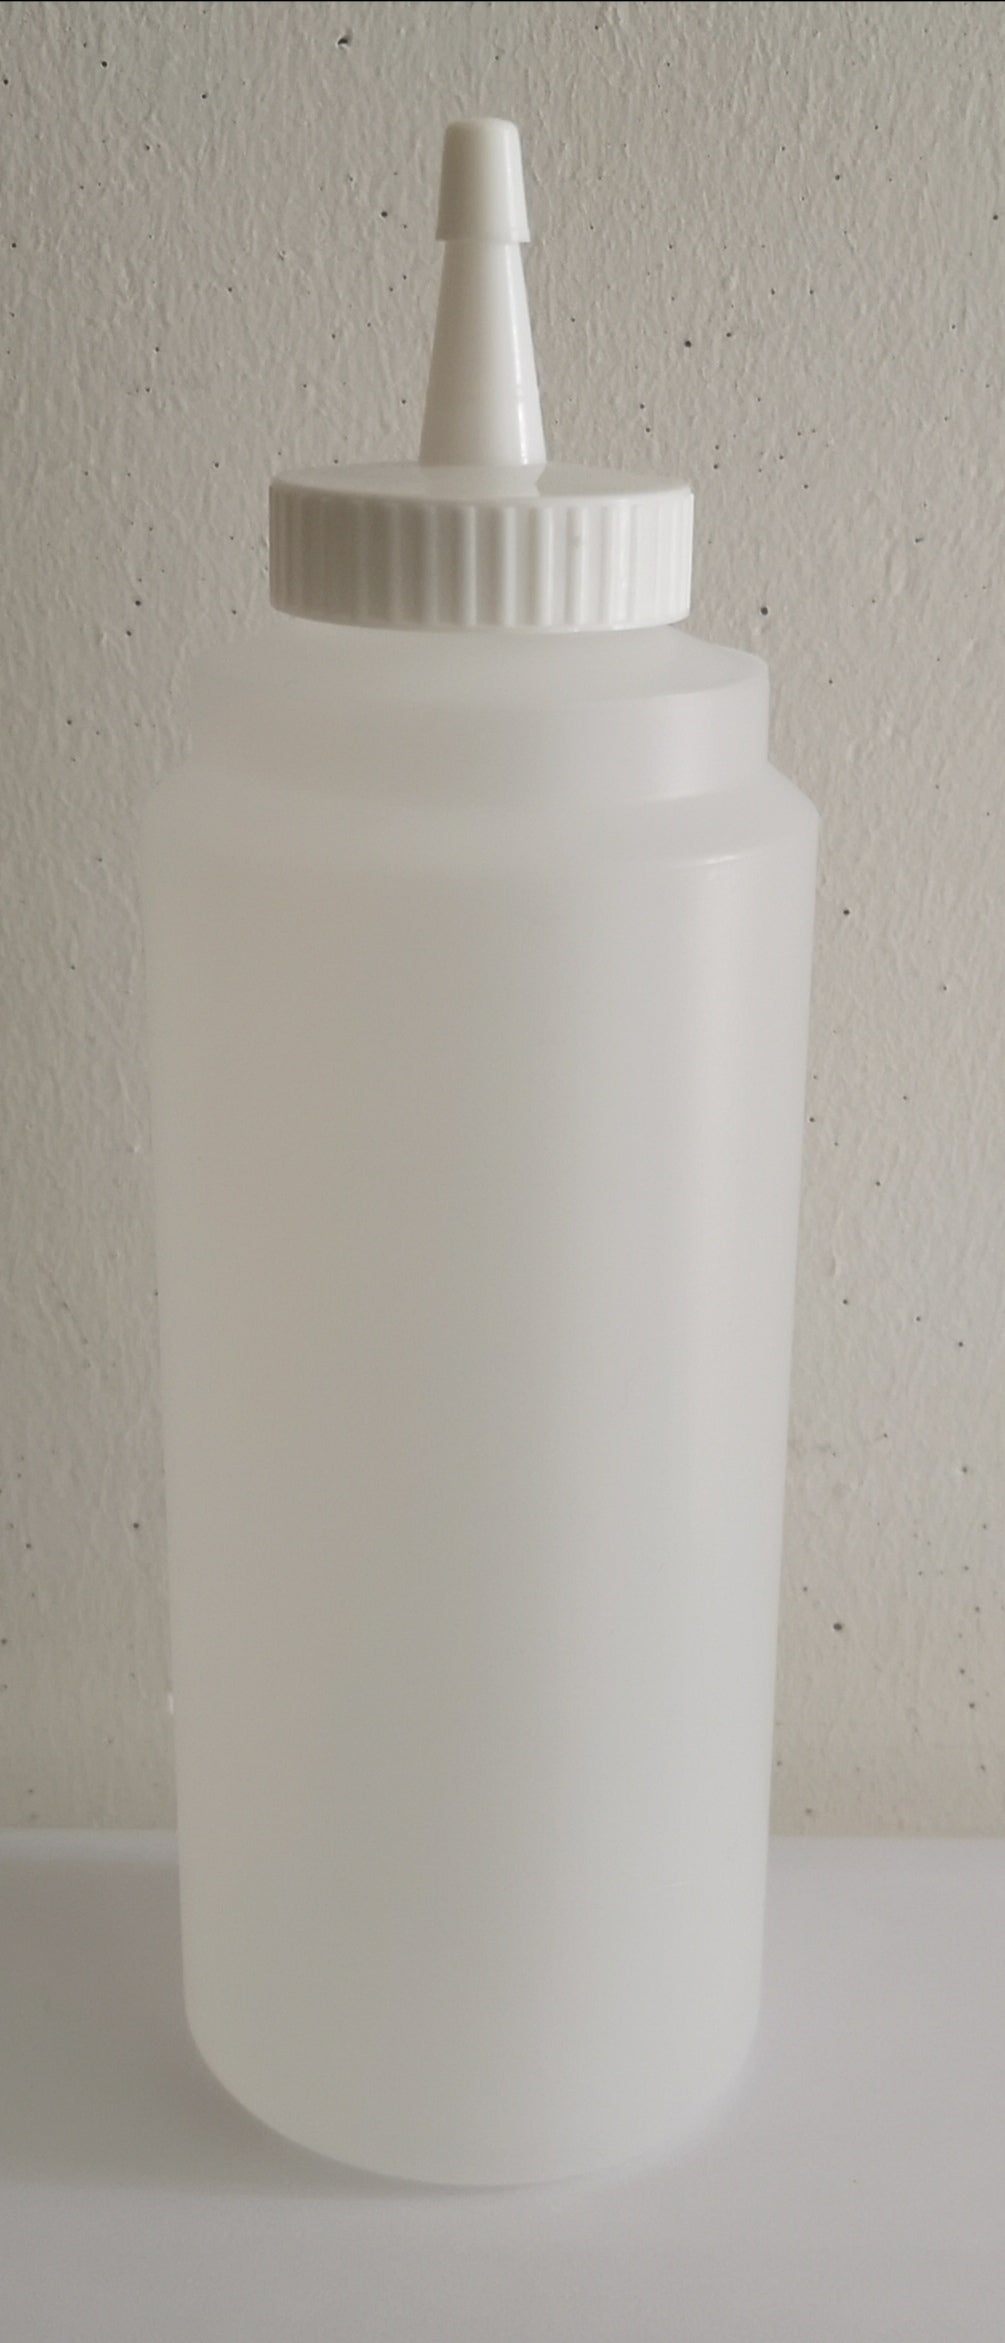 SB0.5 - Entry Sauce Bottle 0.5L